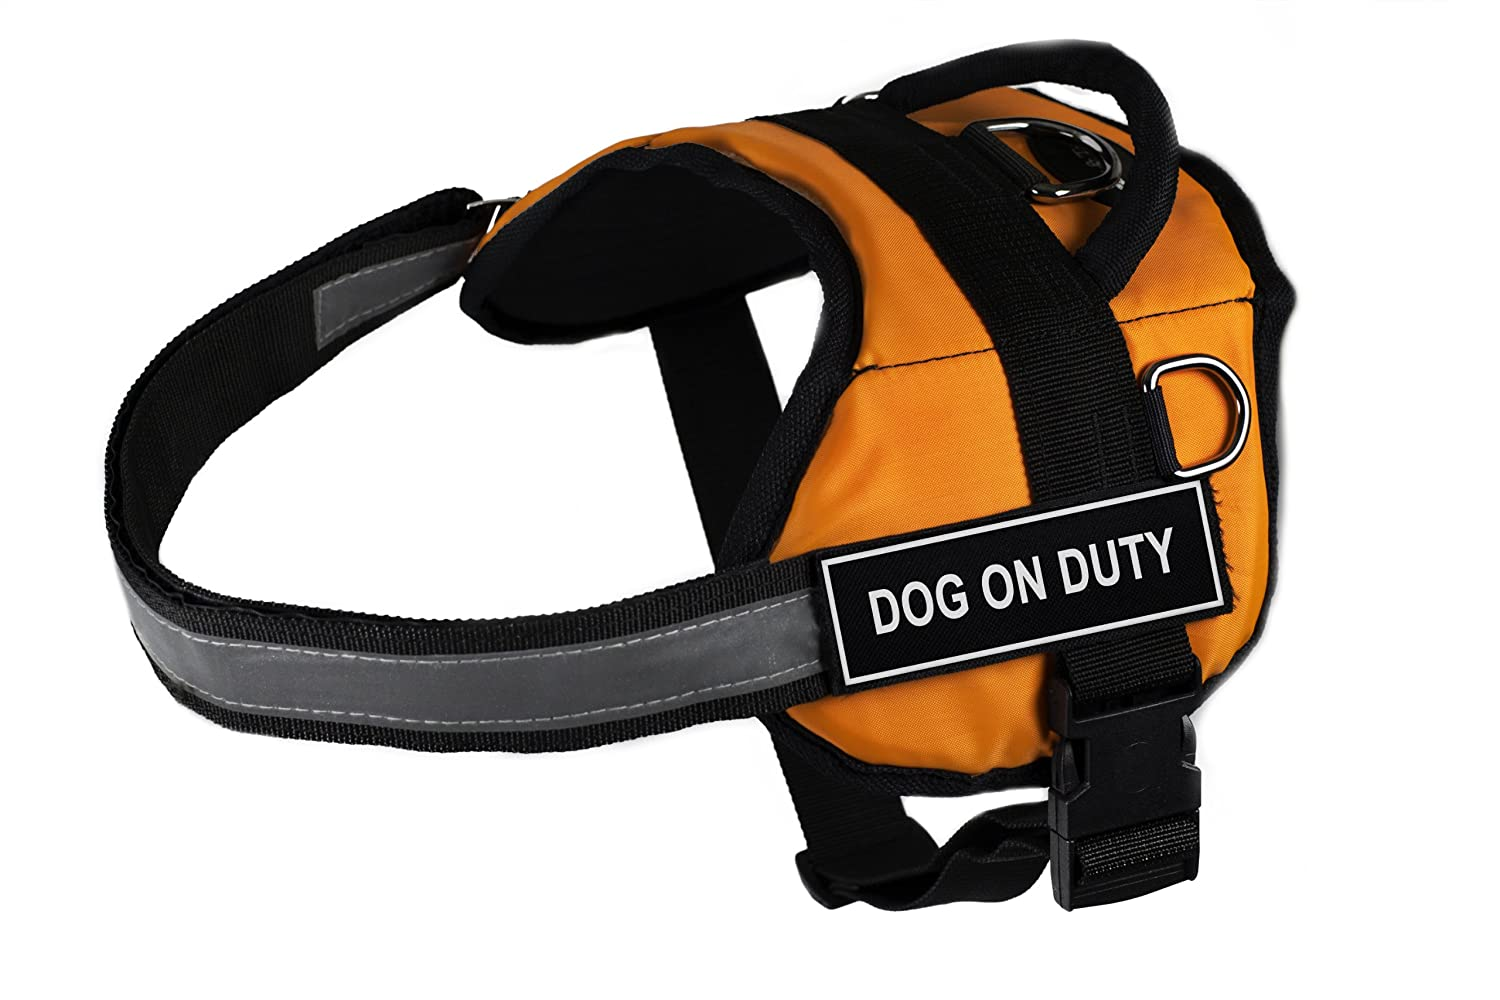 Dean & Tyler DT Works Harness Dog On Duty Pet Harness, Large, Fits Girth Size 34-Inch to 47-Inch, orange Black